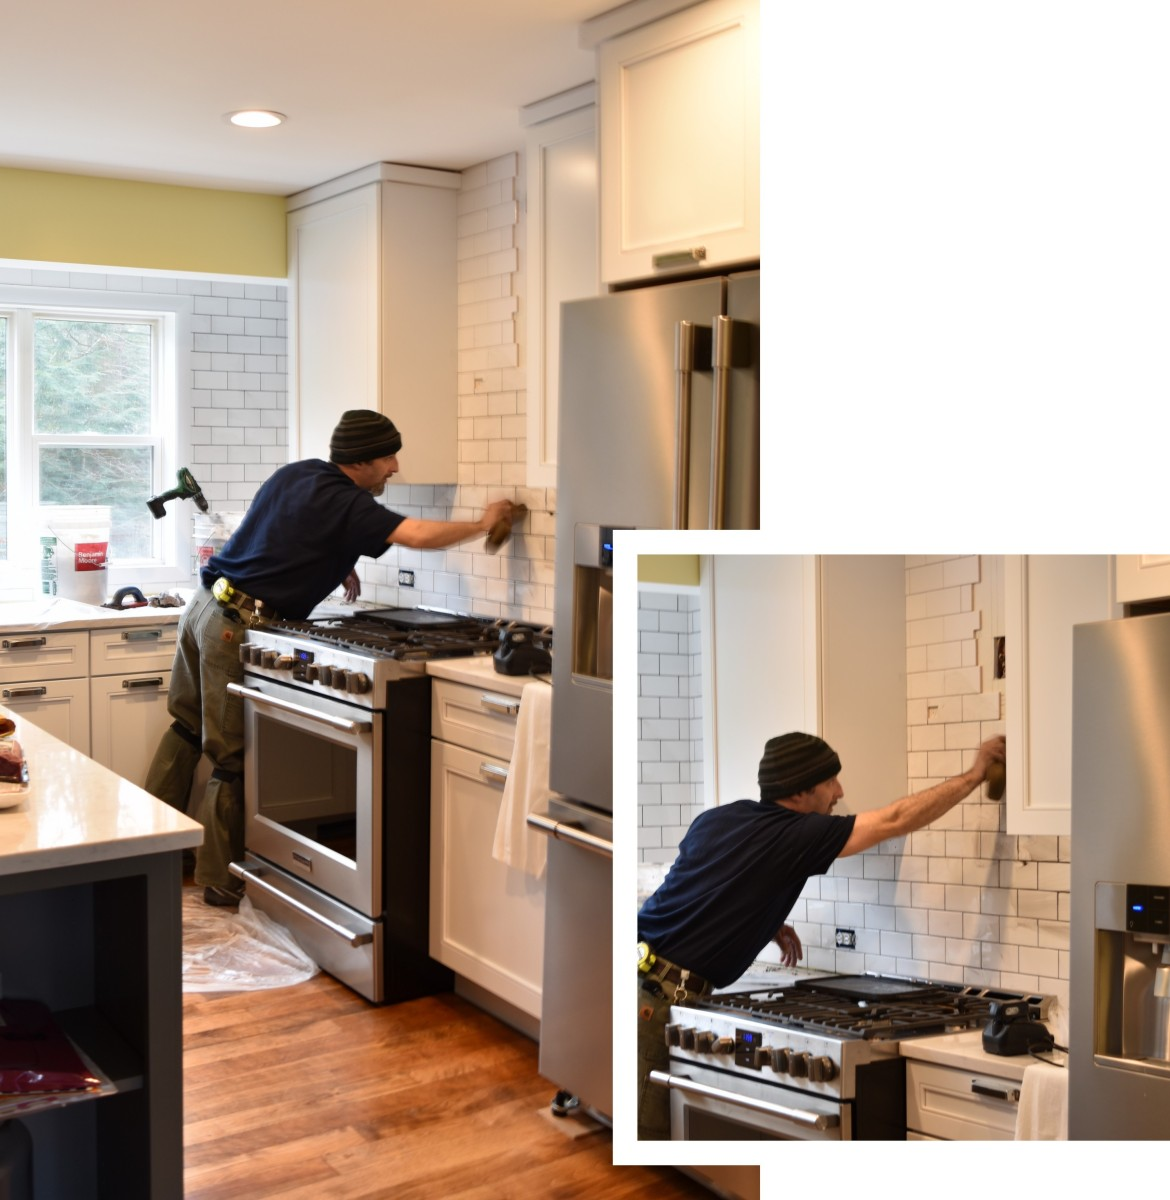 How do you choose the perfect kitchen tile backsplash? There are so many decisions. These are 12 ideal options for the kitchen backsplash and ONE is what I chose for my kitchen renovation. Click over to check them out + follow along on how I installed the tile > www.JennaBurger.com